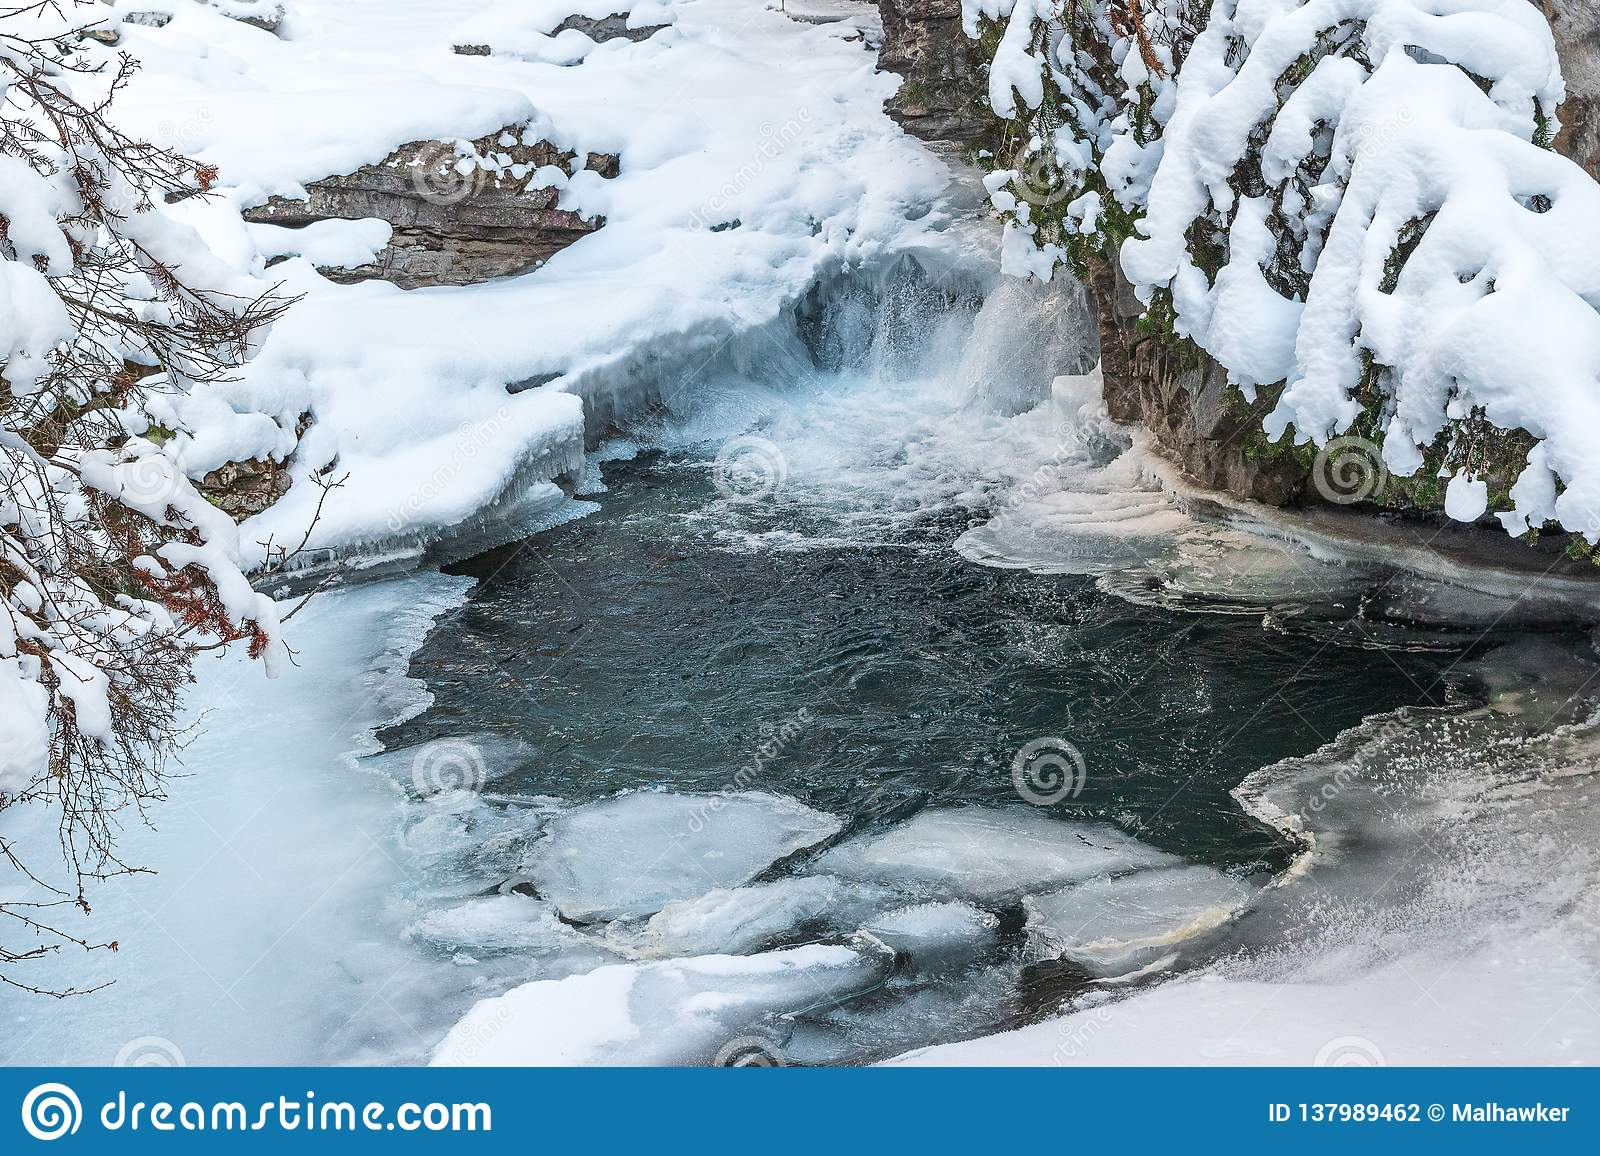 Frozen waterfalls of Johnston Canyon in Banff National Park, Canada